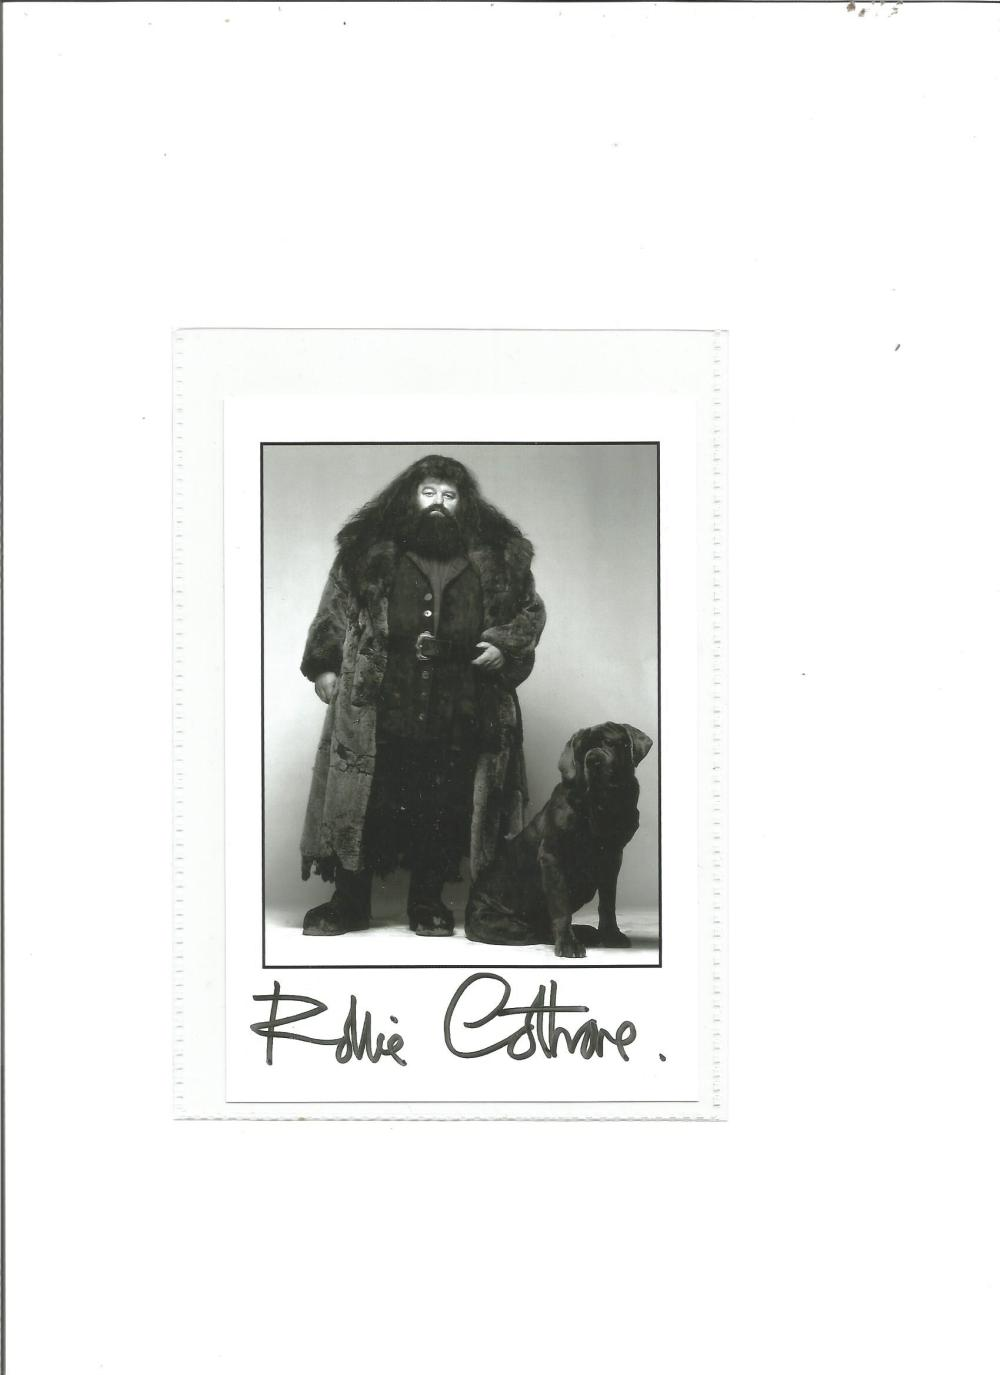 Robbie Coltrane signed 6x4 b/w photo as Hagrid in Harry Potter. Good Condition. All signed pieces